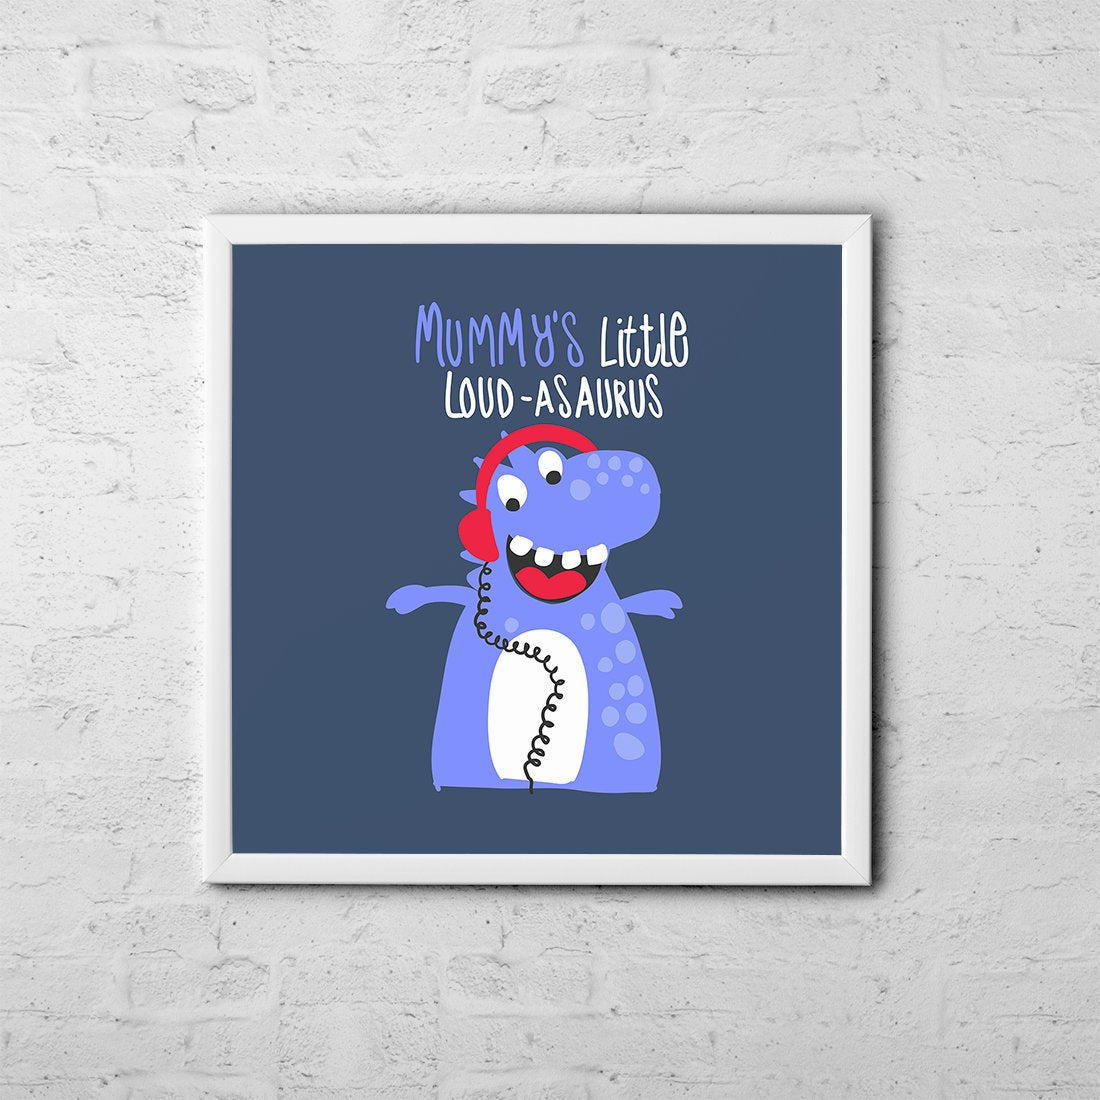 Mummy's Little Loud-asaurus - Baby Room Nursery Art Poster Print